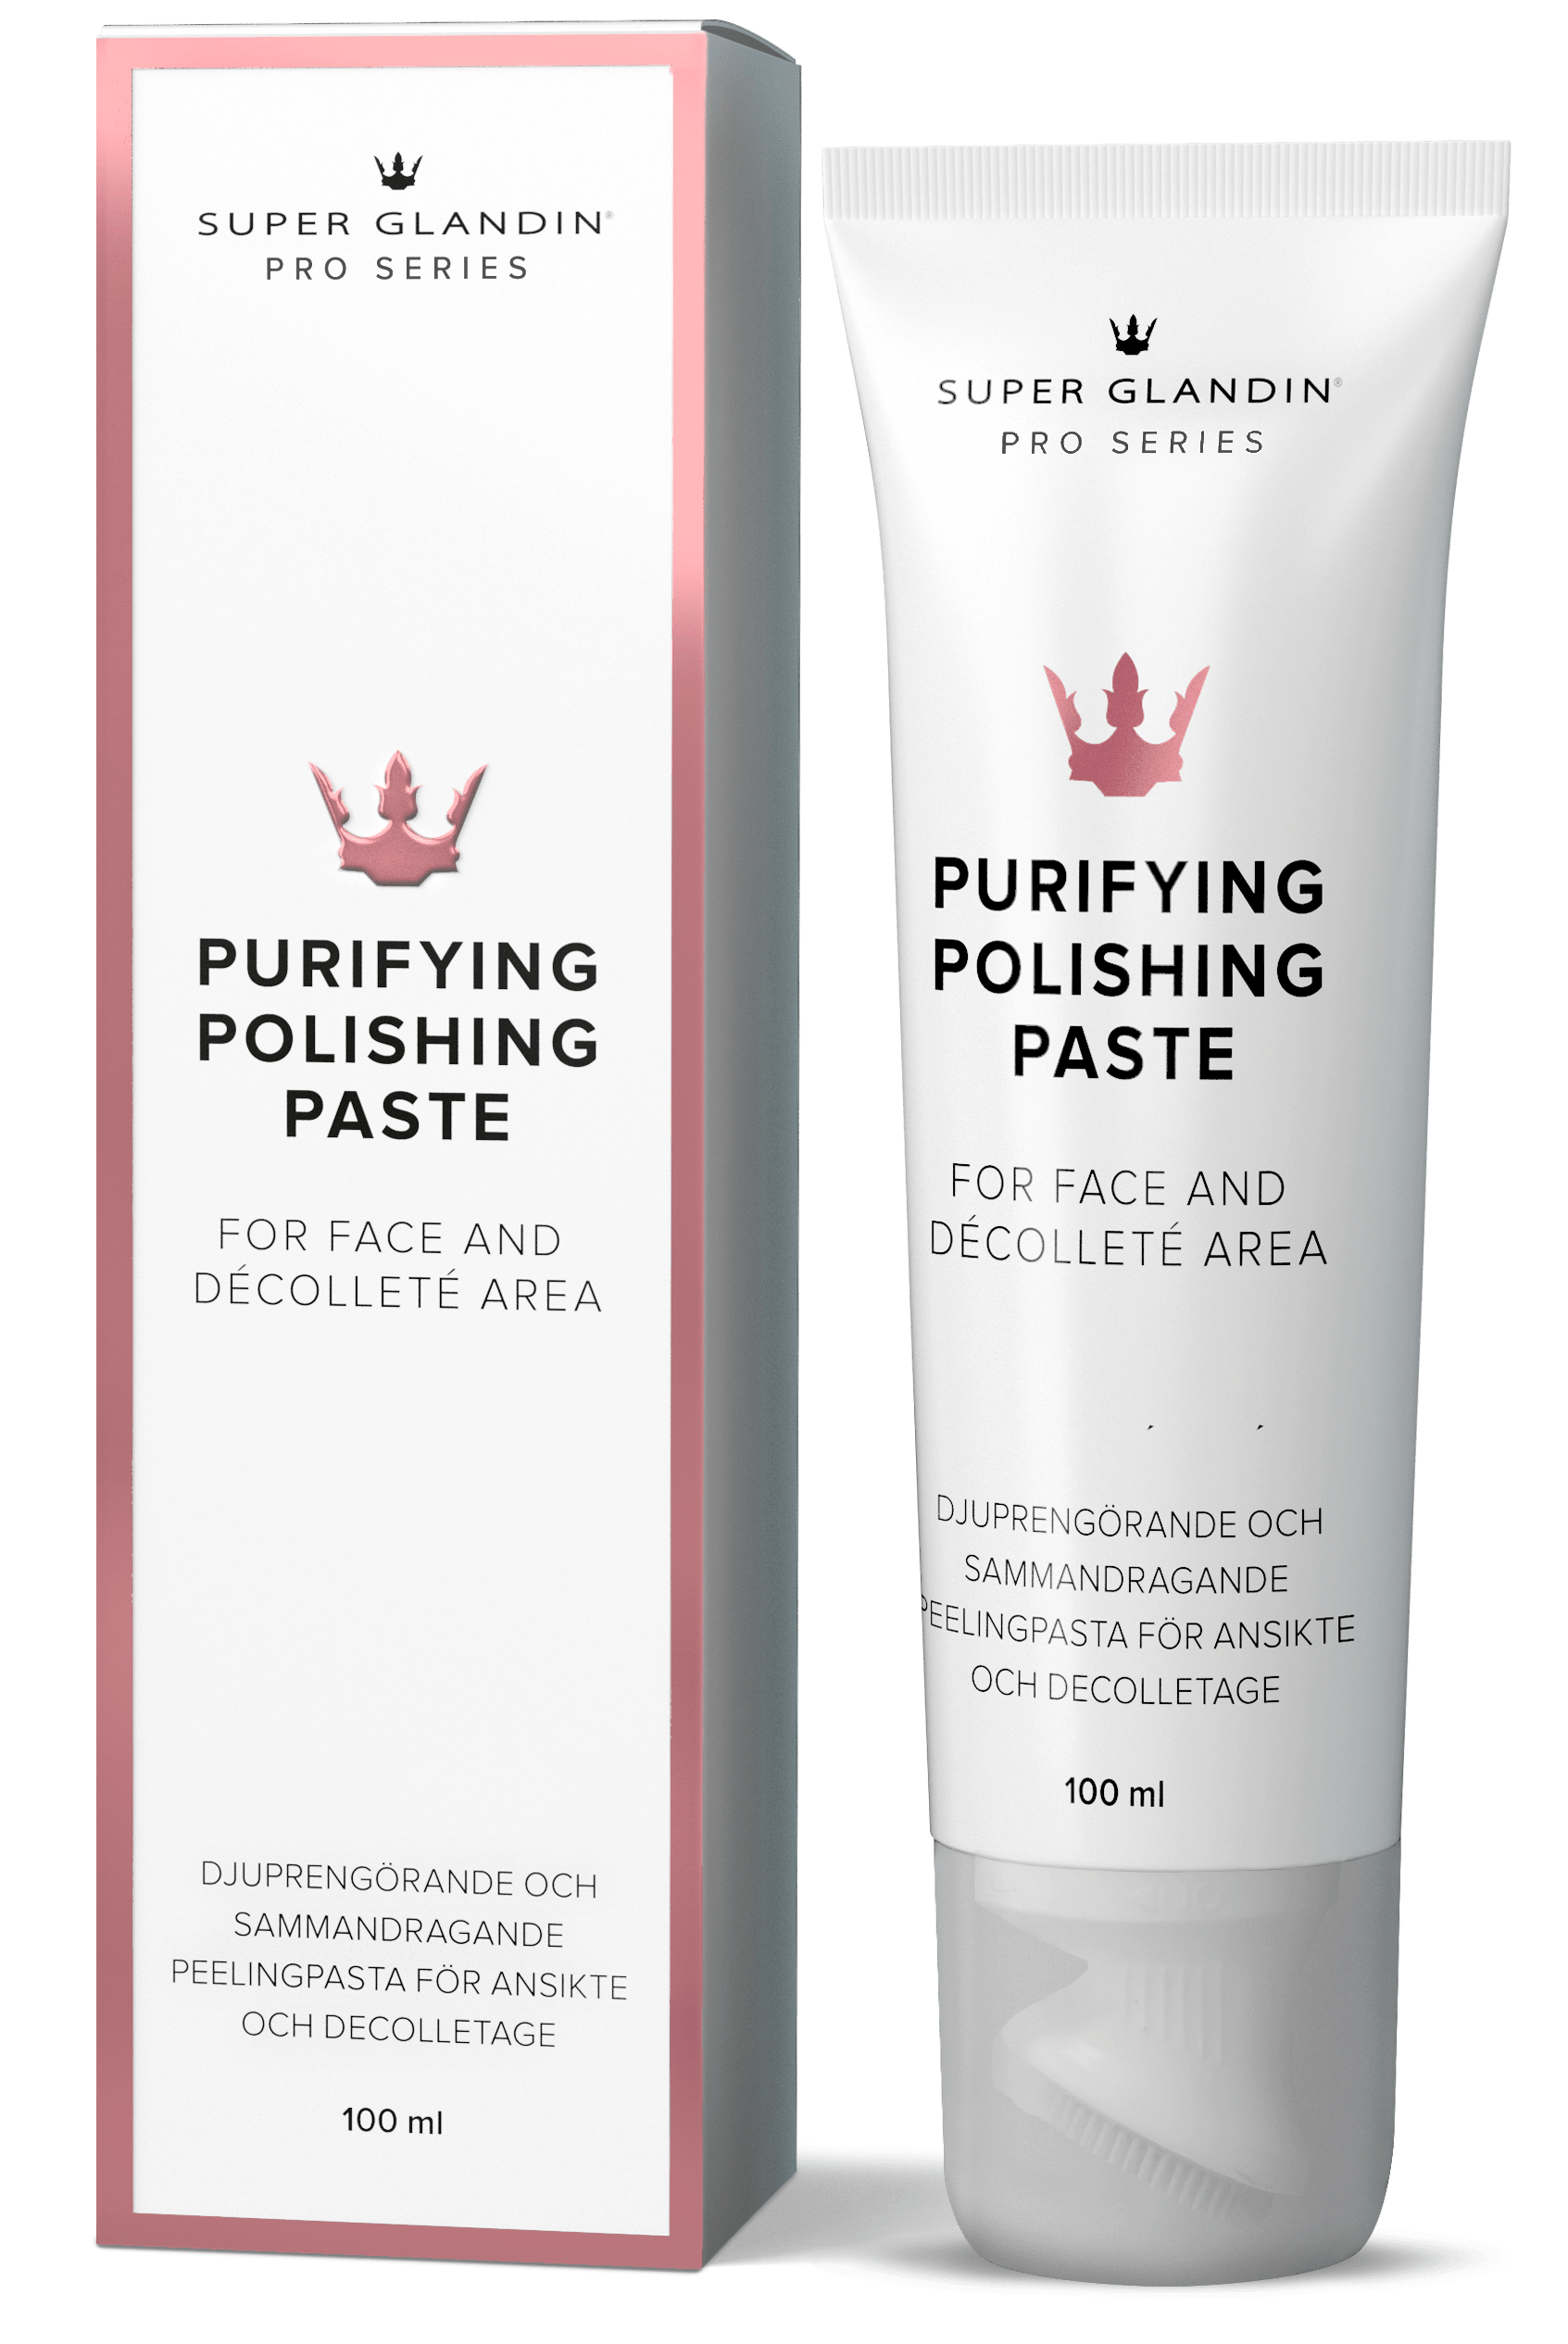 Purifying Polishing Paste